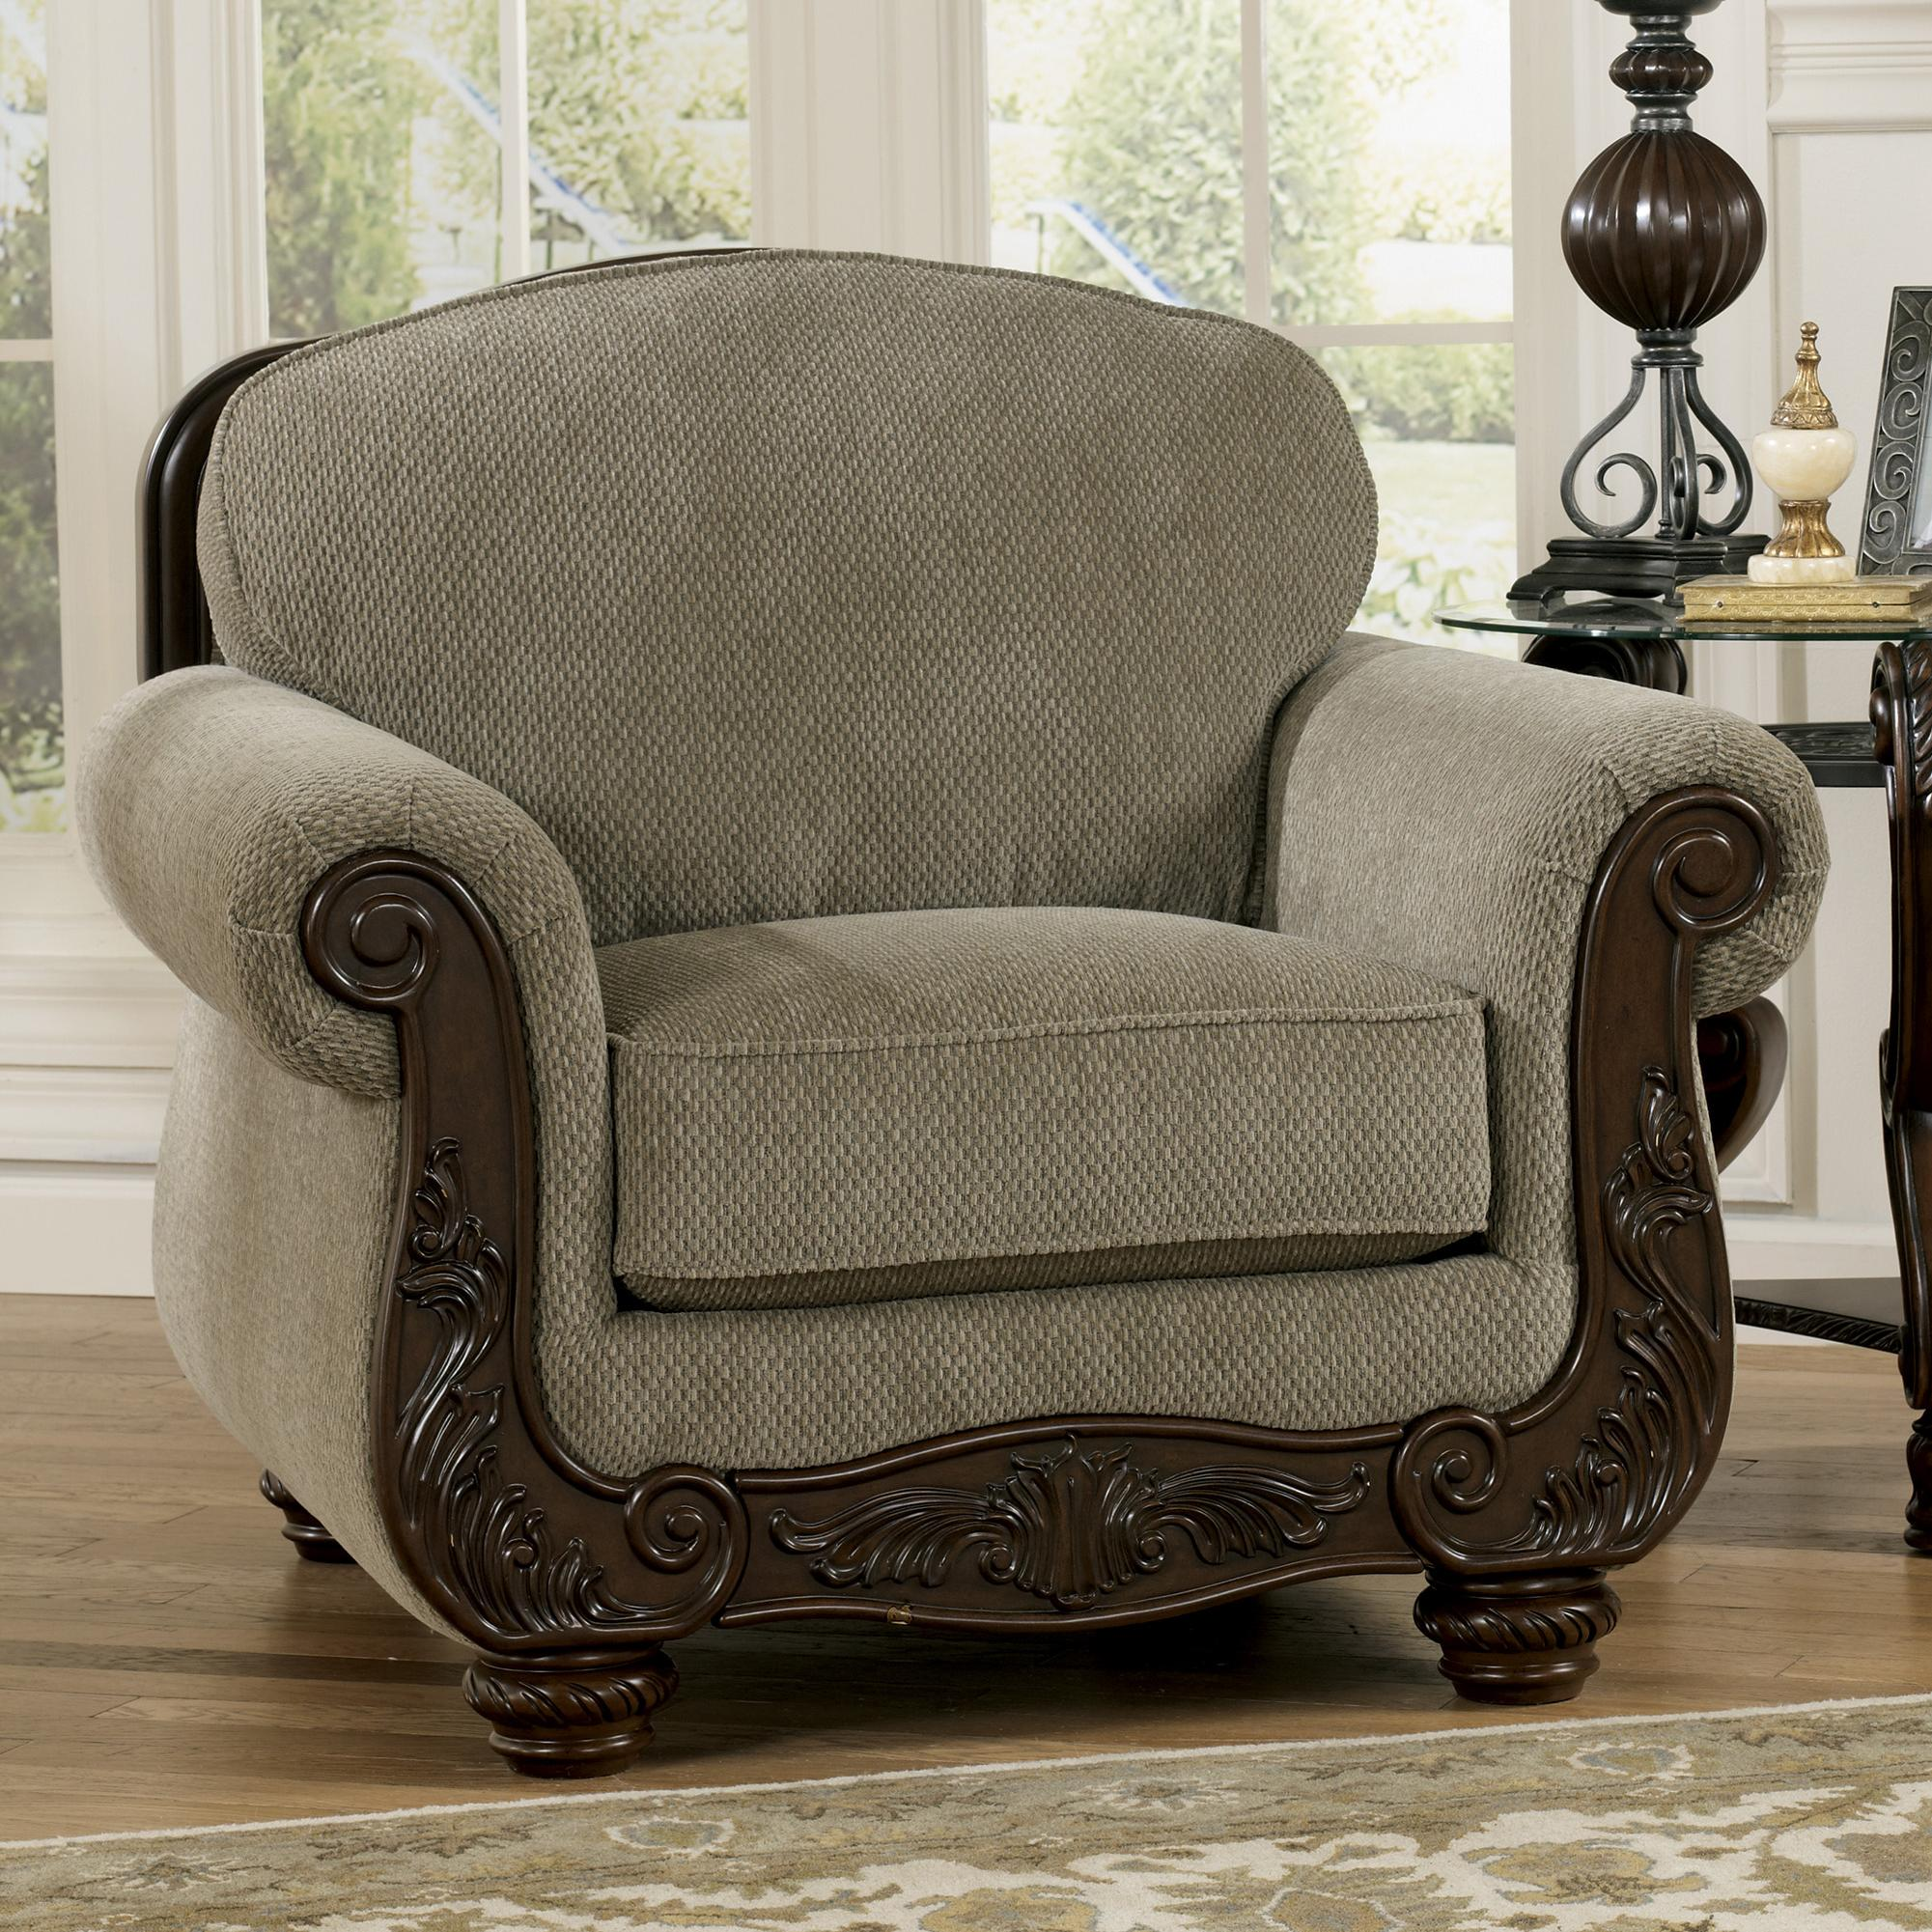 Signature Design by Ashley Martinsburg - Meadow Chair - Item Number: 5730020